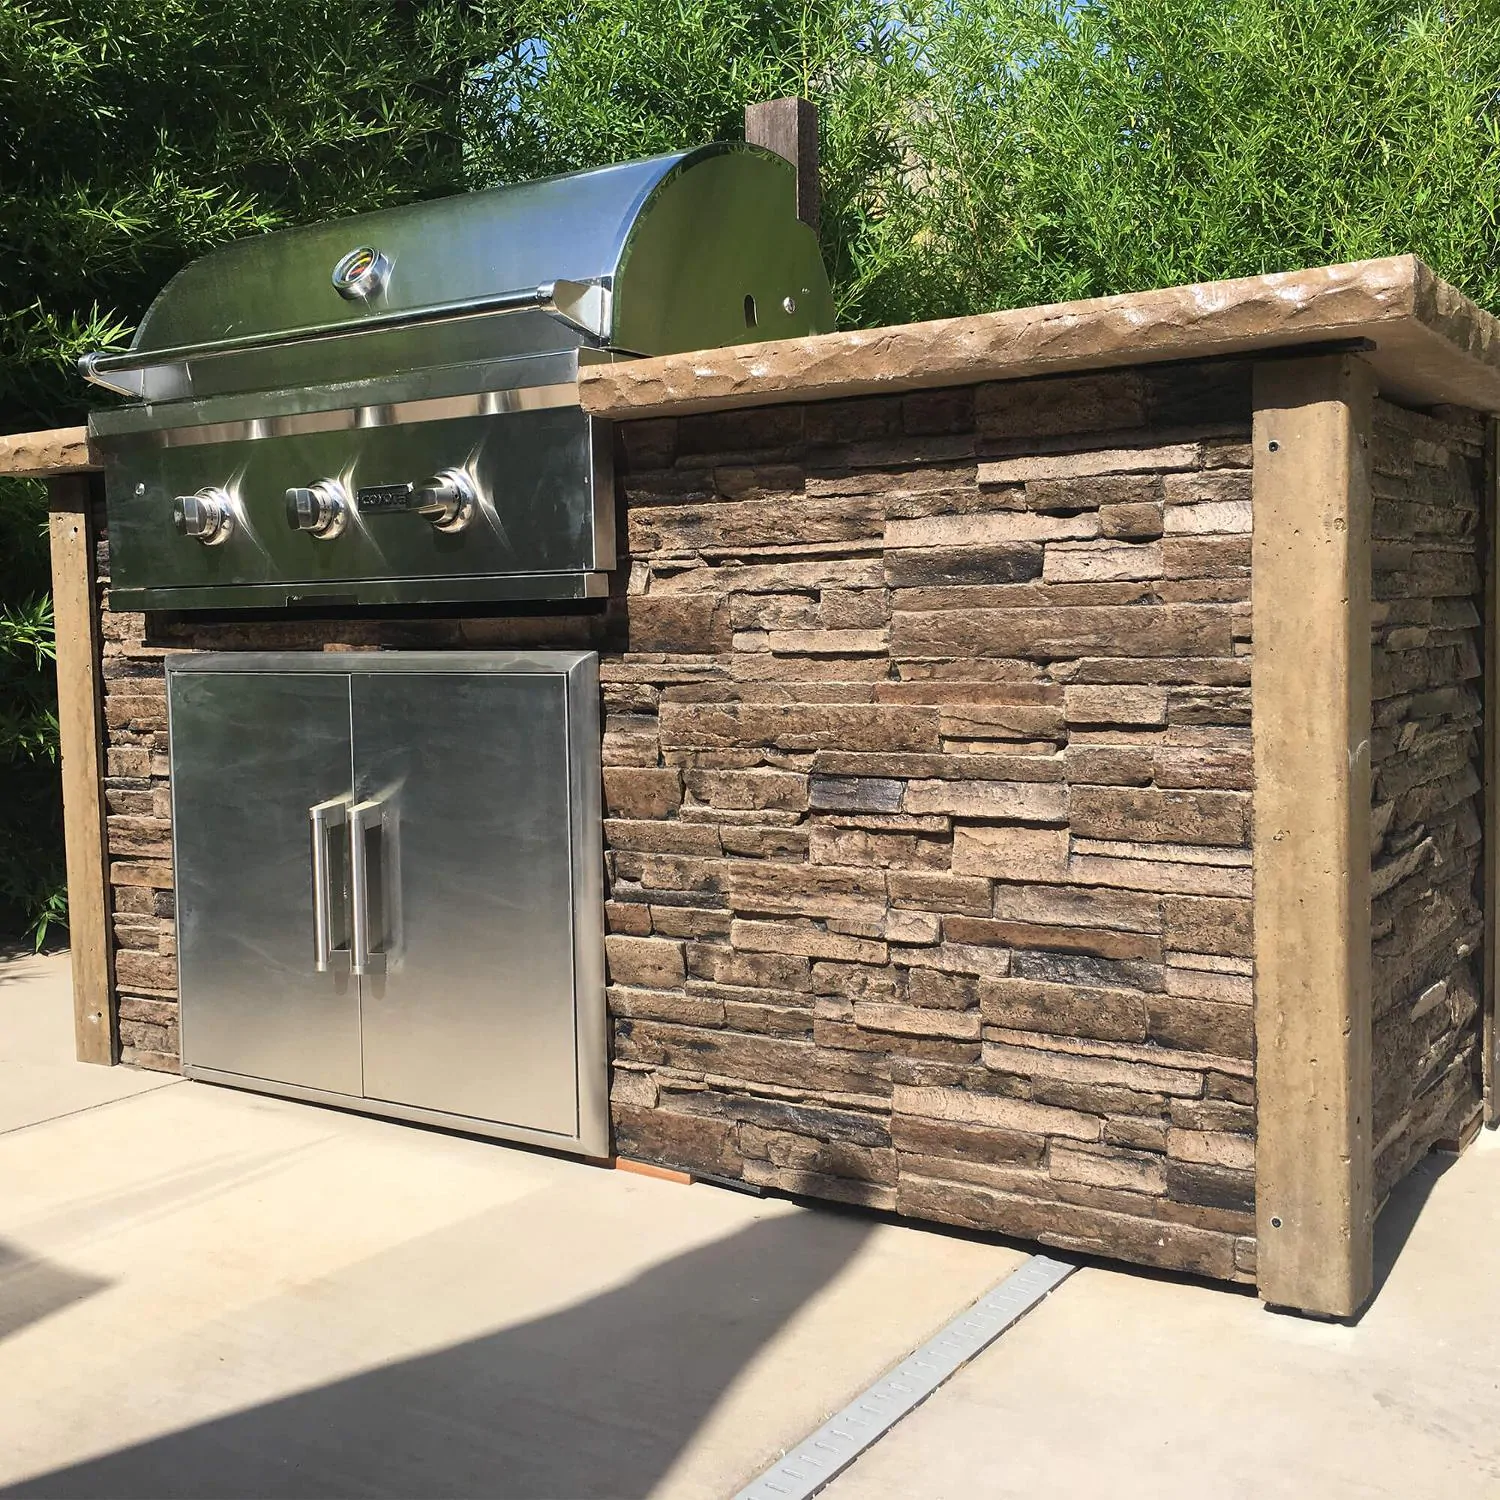 Coyote Ready-To-Assemble 6 Ft Outdoor Kitchen Island With 34-Inch C-Series Natural Gas Grill (Ships As Propane With Conversion Fittings) - Stacked Stone/Brown Terra - RTAC-G6-SB-C2C34NG